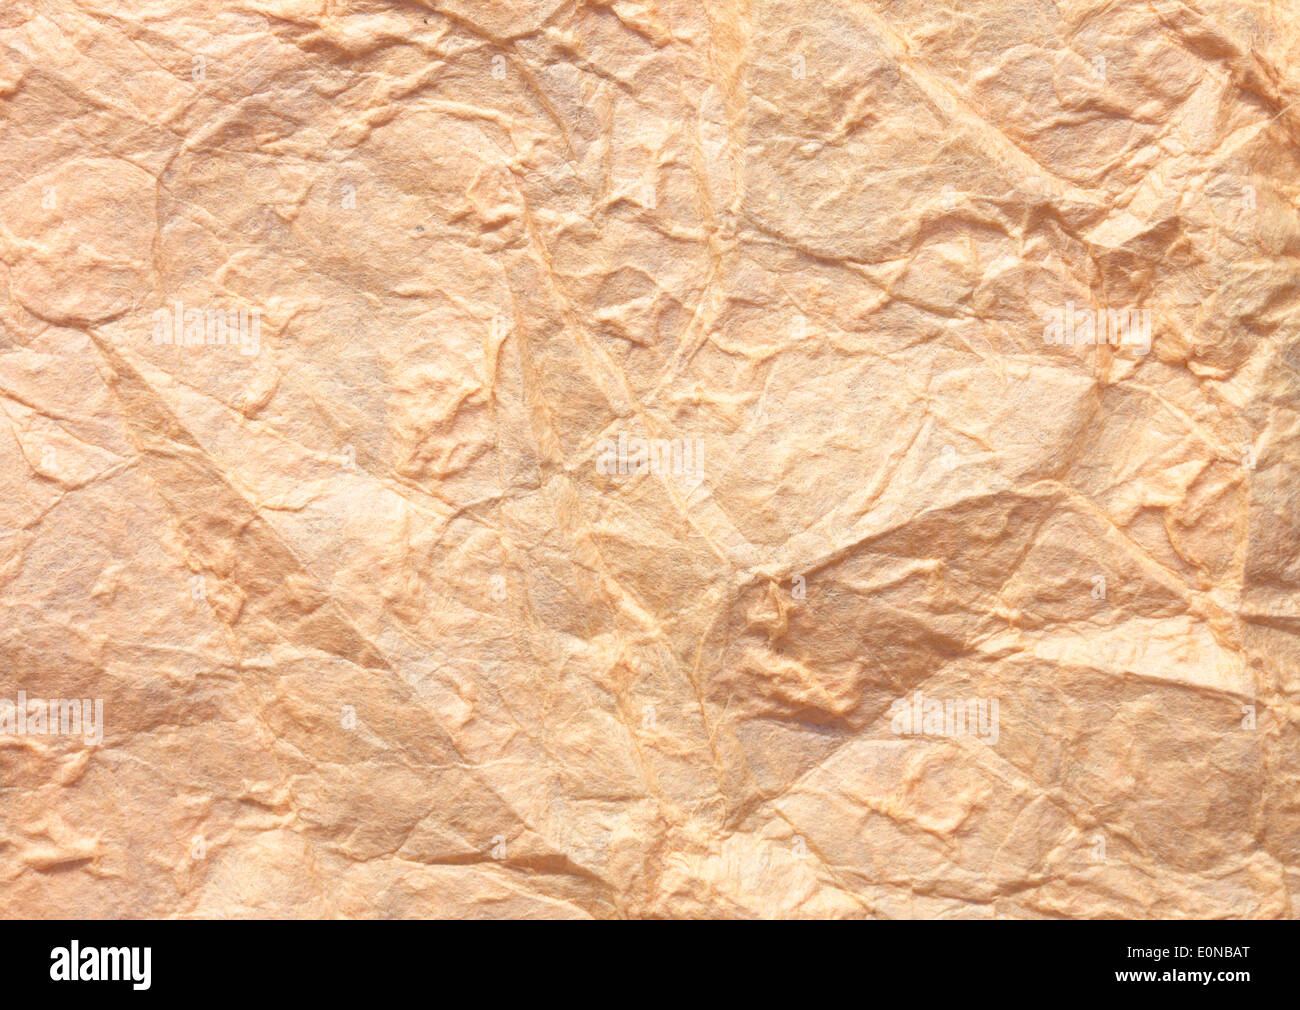 Paper texture brown paper sheet. Sheets of crumpled paper. - Stock Image